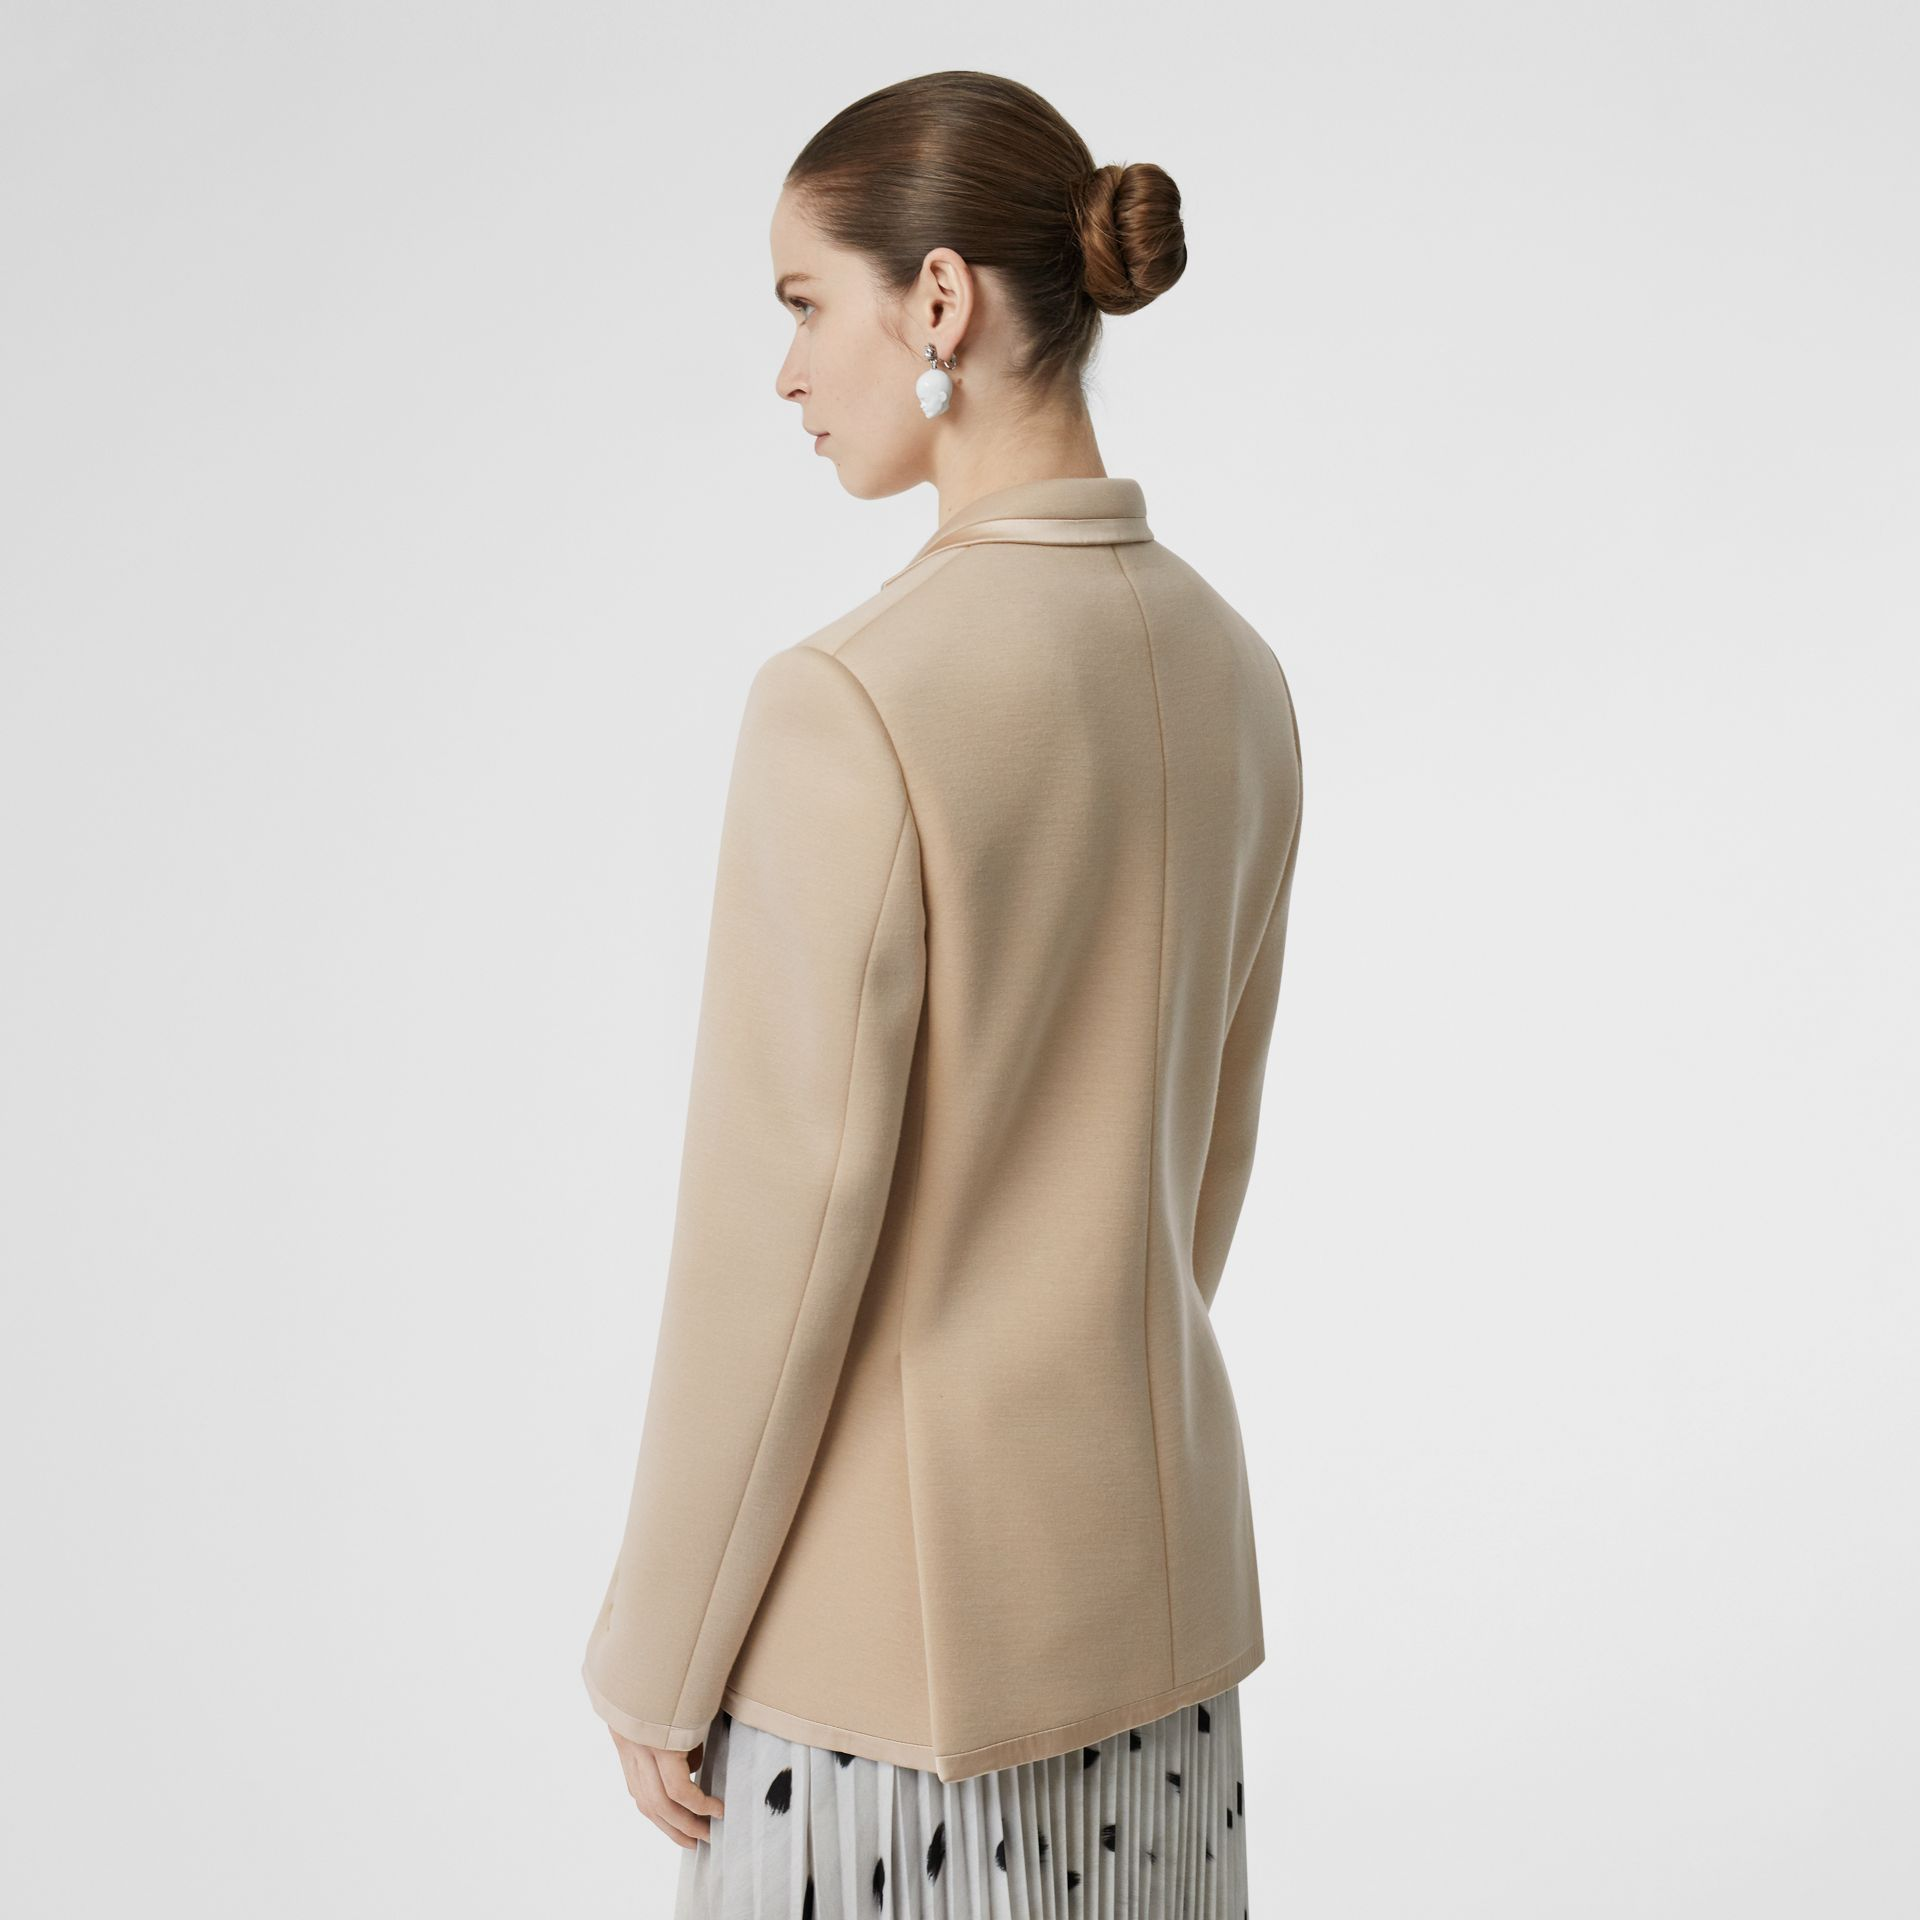 Silk Trim Neoprene Blazer in Teddy Beige - Women | Burberry - gallery image 2